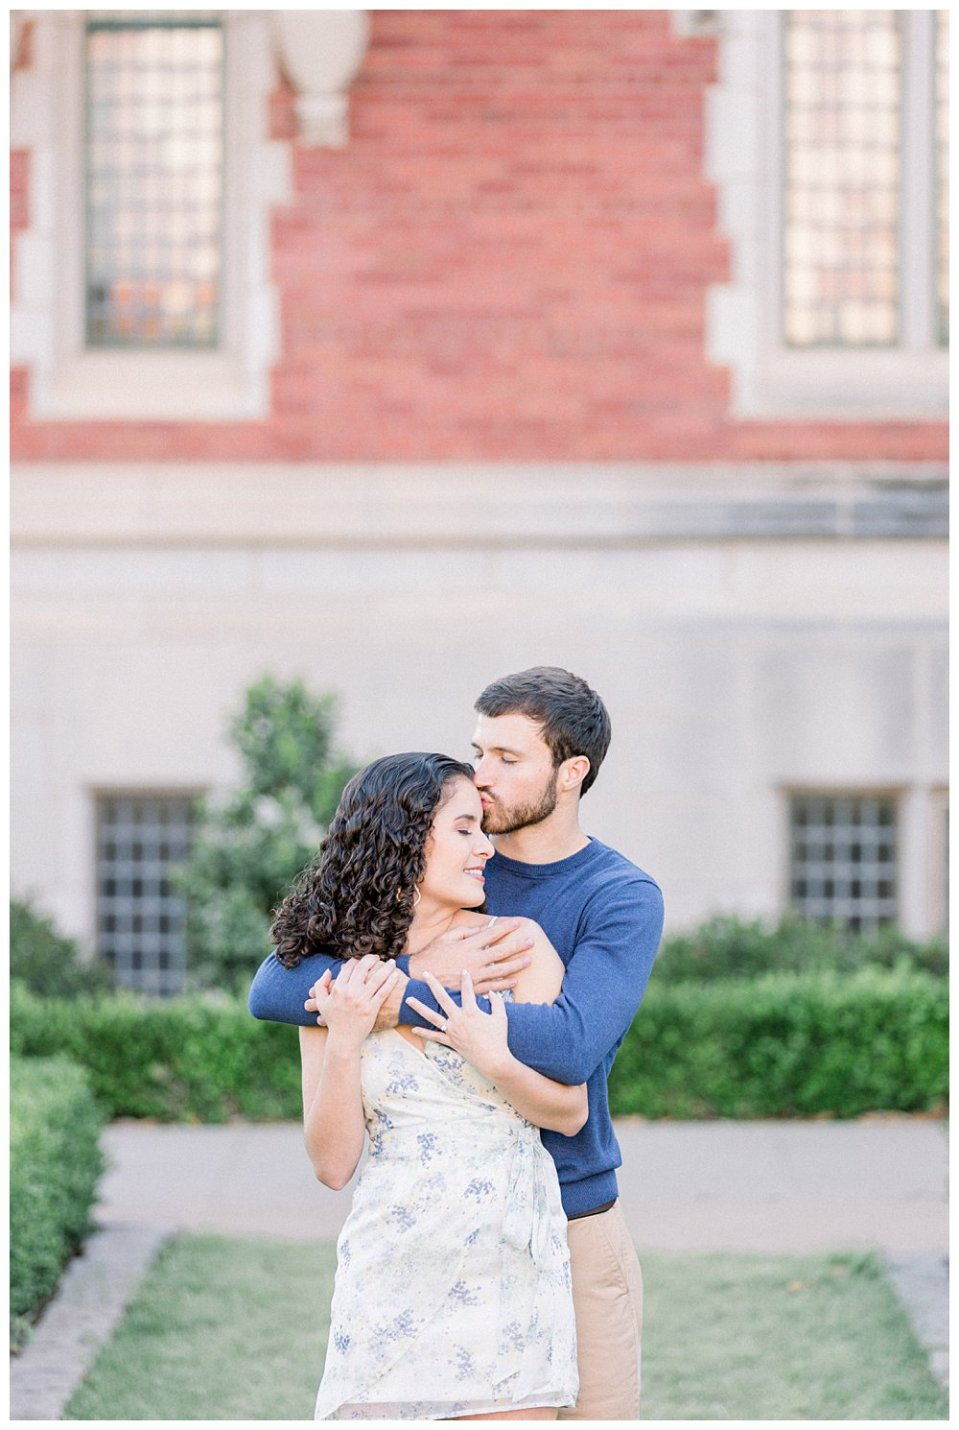 Guy hugging girl from behind kissing her